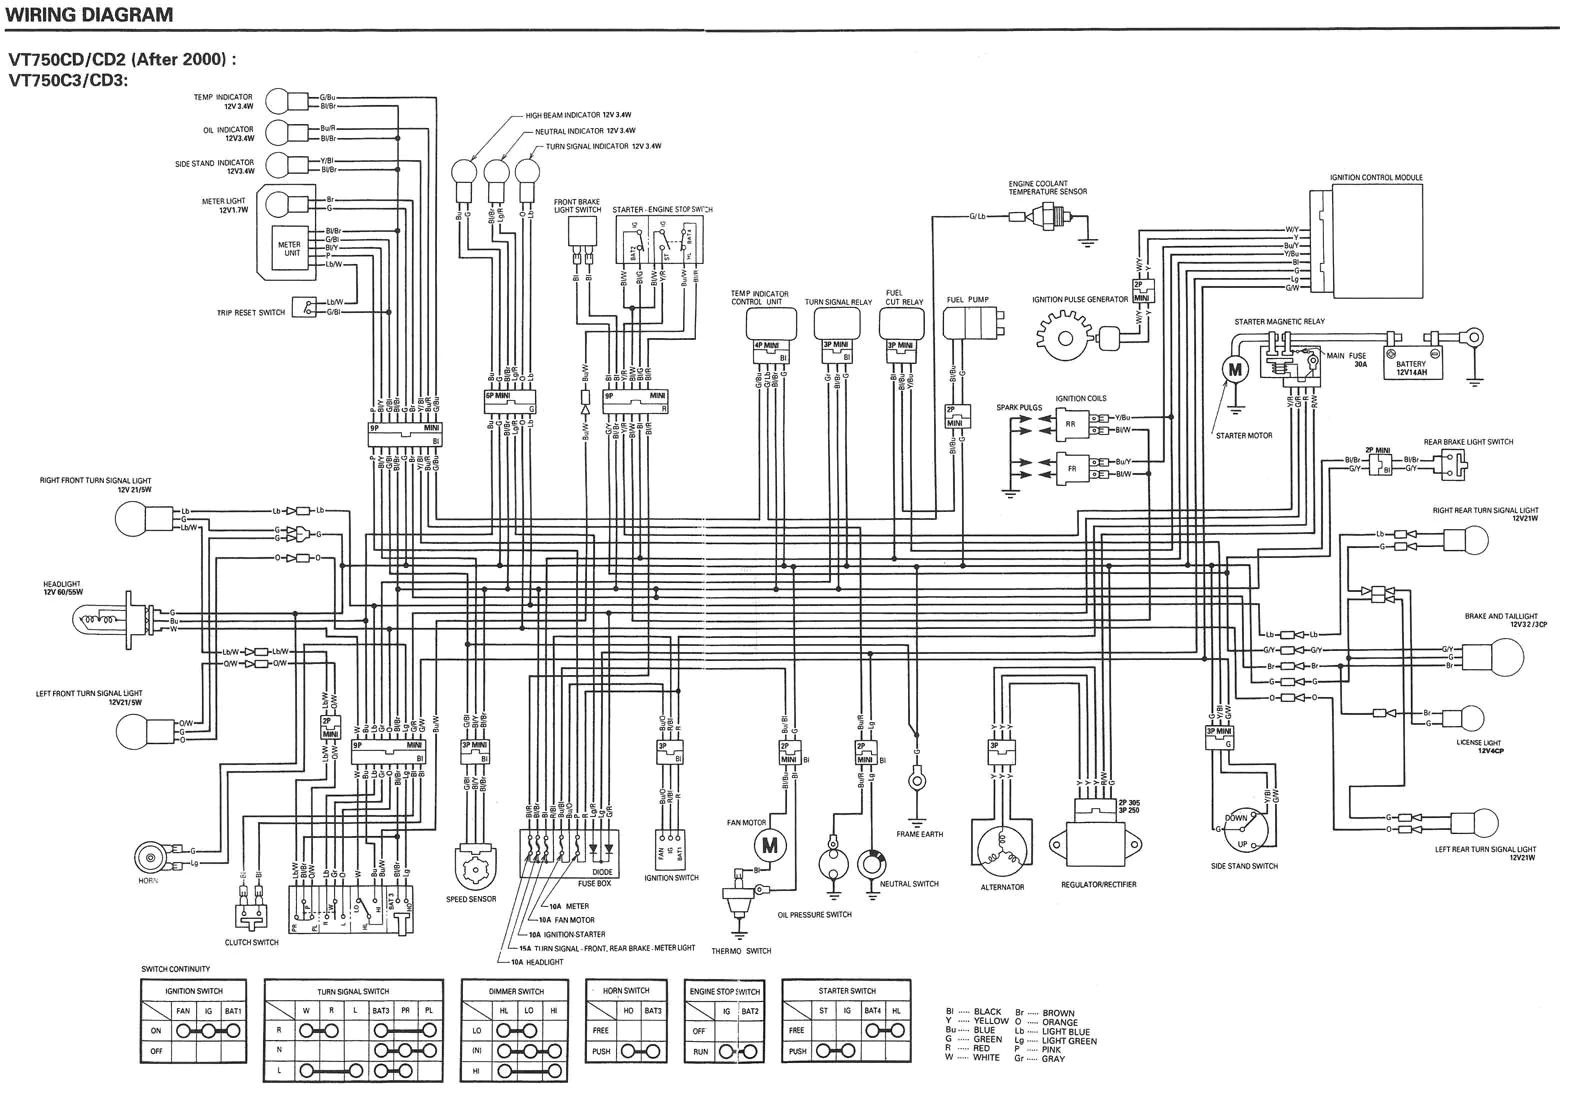 motorcycle honda shadow wiring diagram wiring diagrams schemahonda shadow motorcycle wiring diagram wiring diagram option honda [ 1575 x 1106 Pixel ]